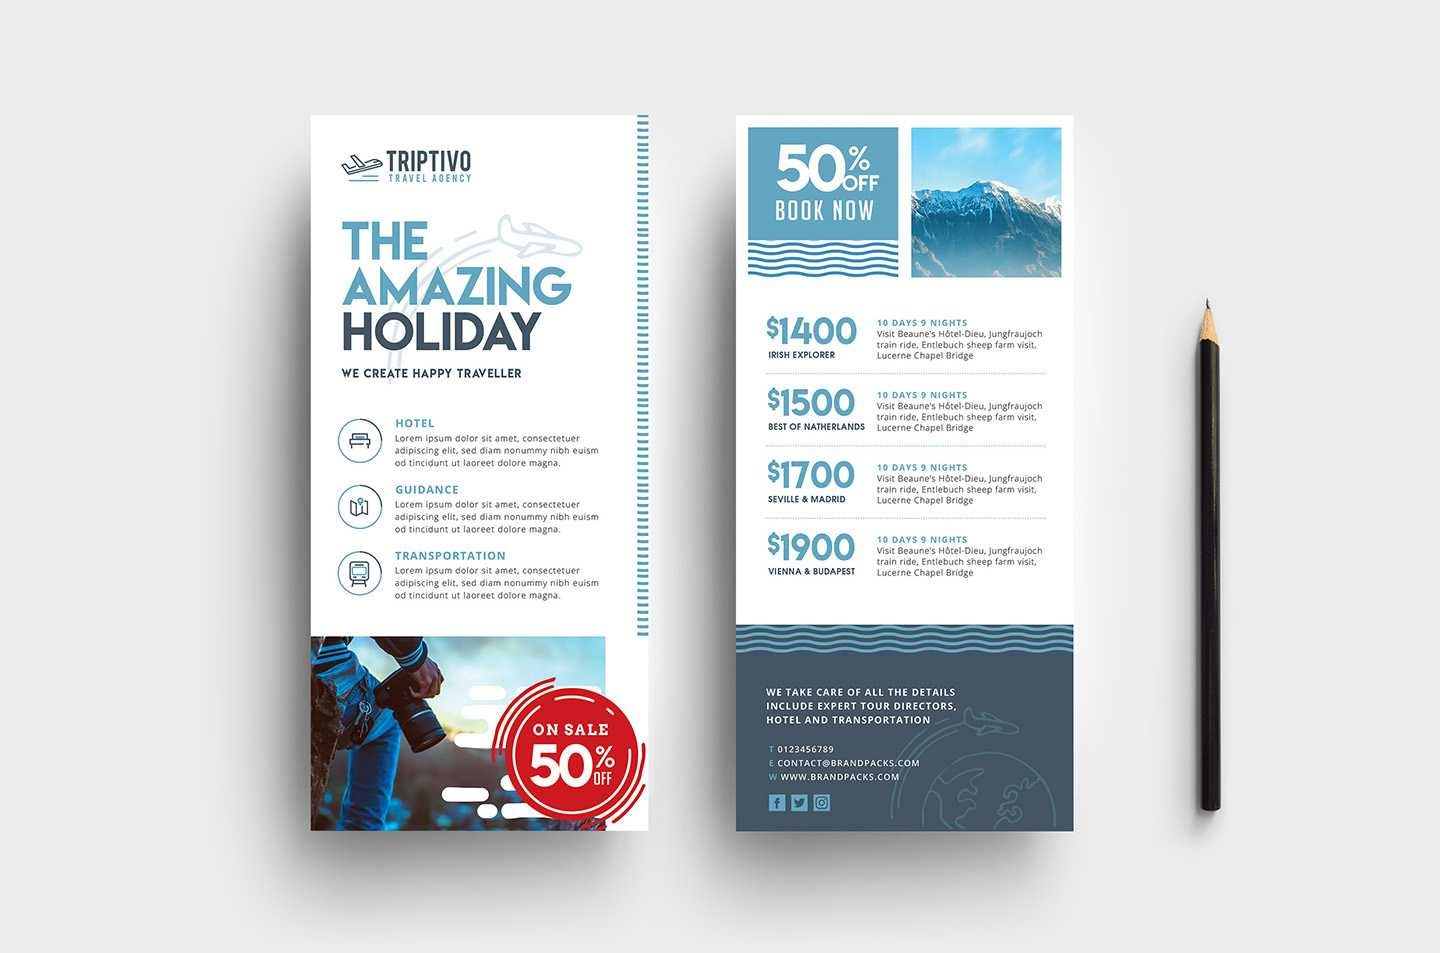 Travel Company Dl Card Template In Psd, Ai & Vector Throughout Dl Card Template